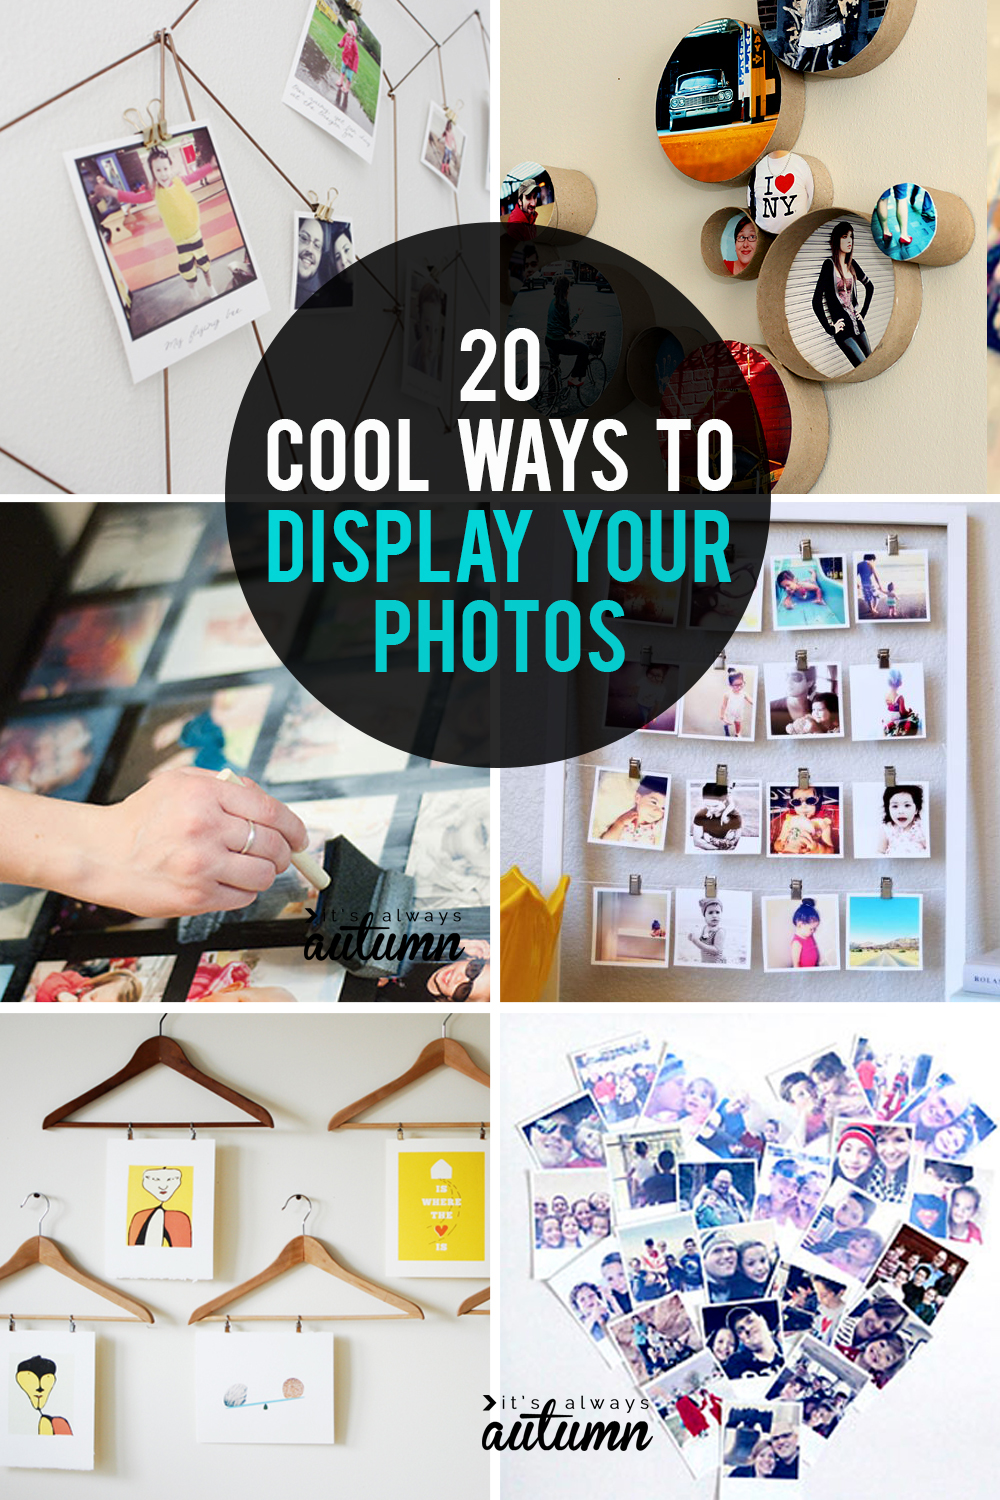 20 cool ways to display your photos. DIY photo display ideas.